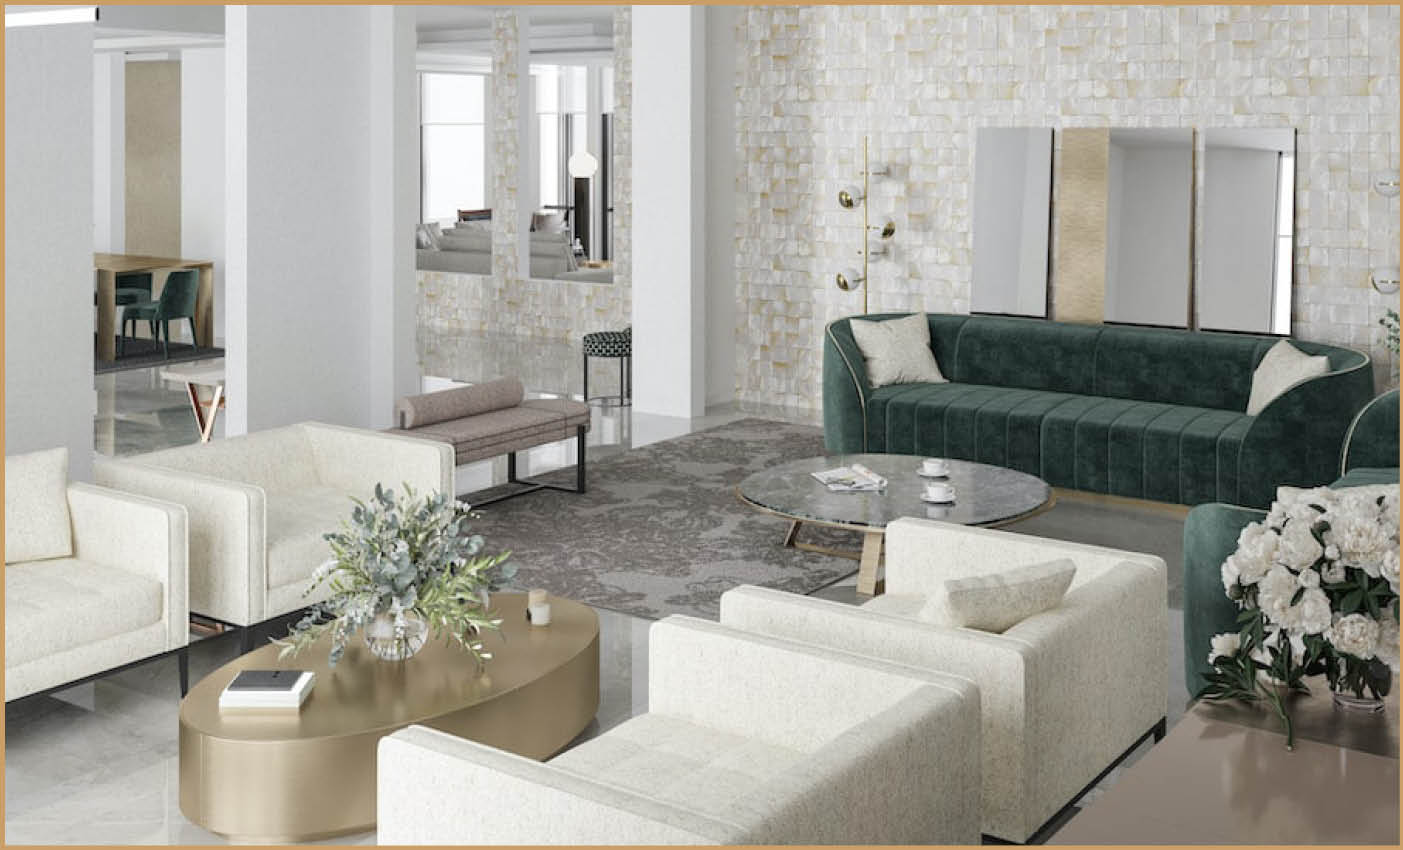 High End Residential Interior Design Projects Italian Interior Design